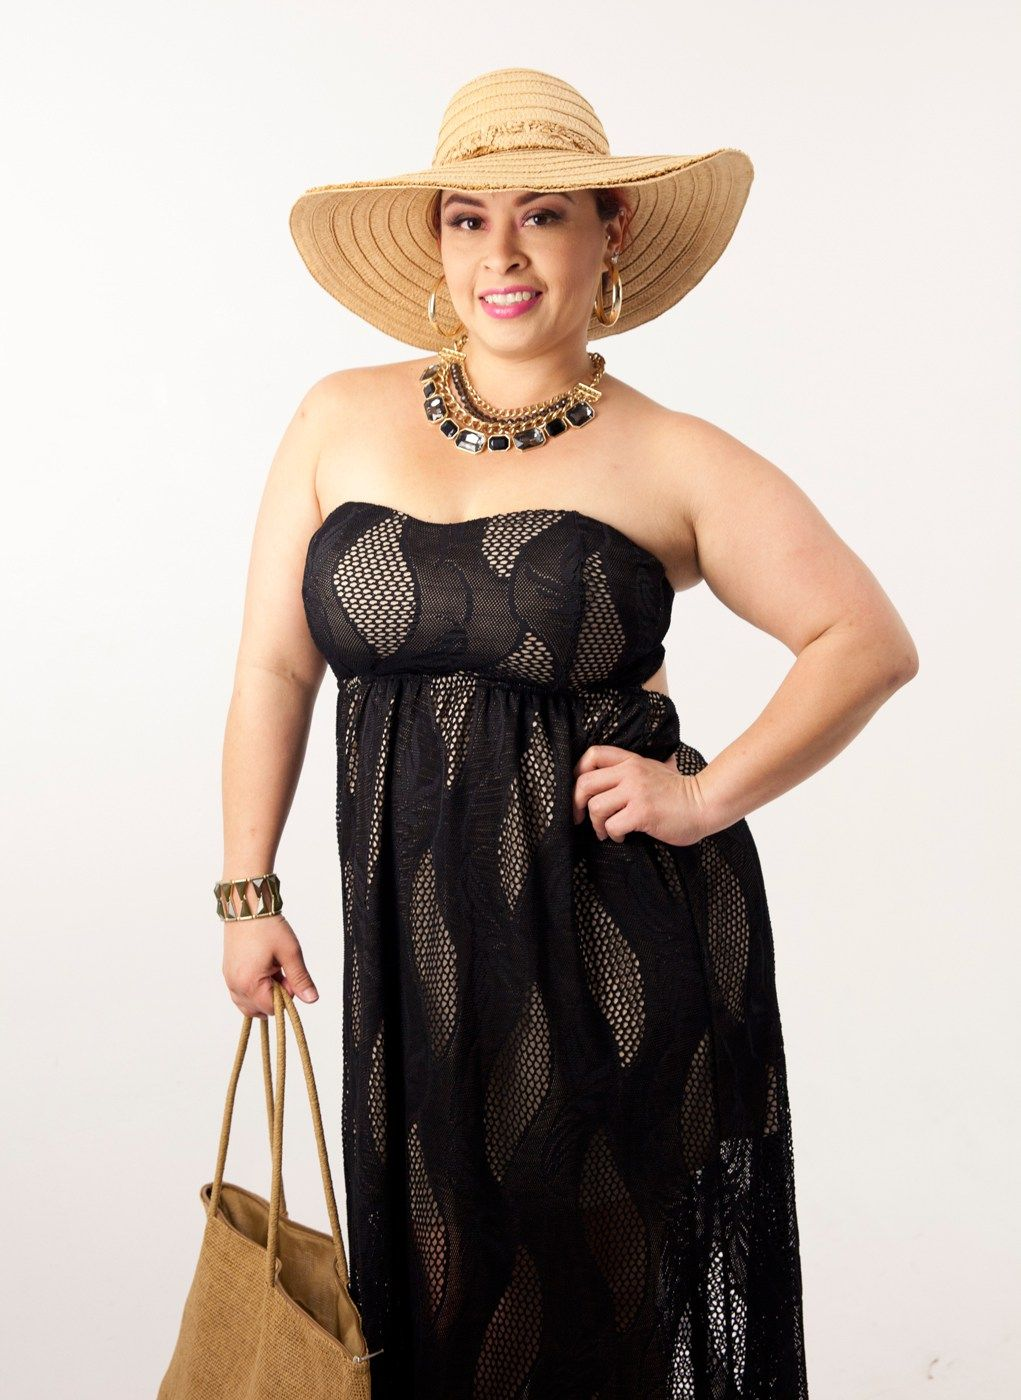 Black Lace Maxi Dress Hat Bag Cruise Outfit | Discount Women's ...